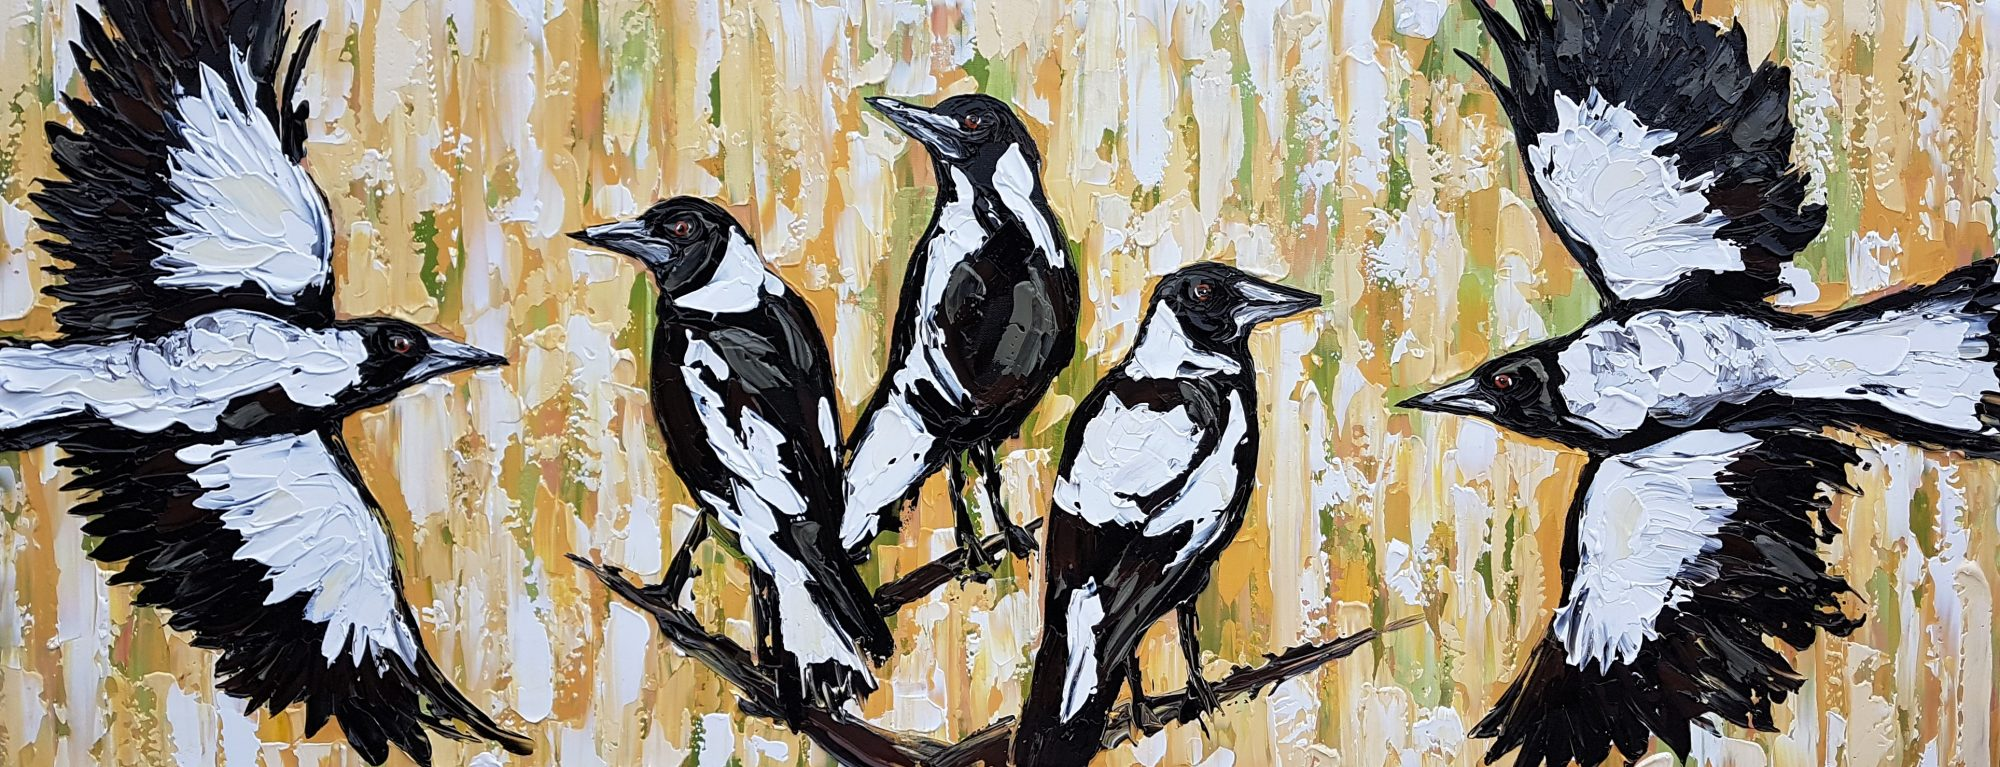 Charm of Magpies in the grass Lisa Fahey